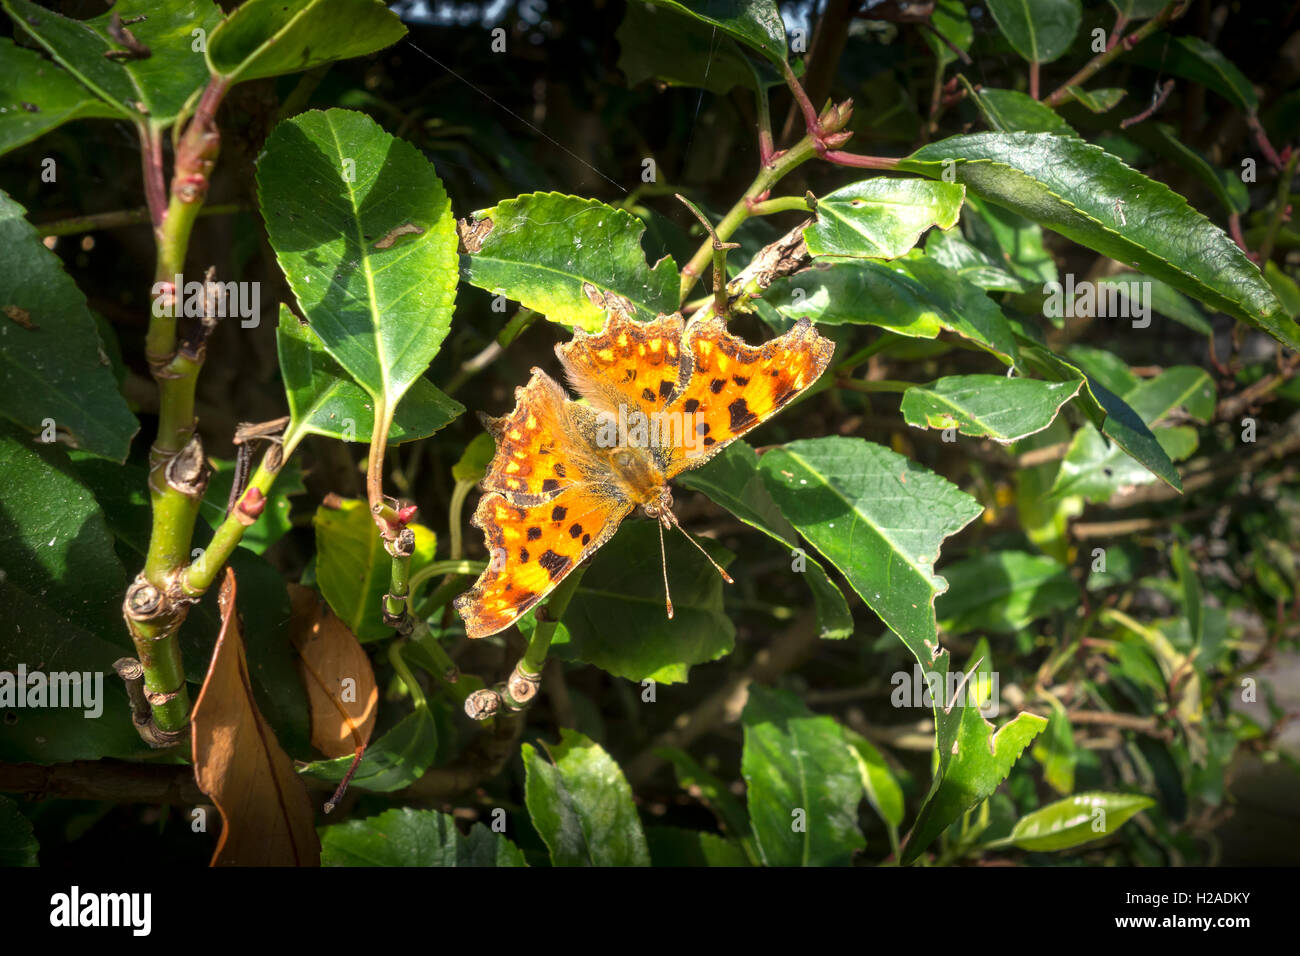 second-generation-comma-butterfly-on-prunus-laurel-tree-milton-cambridge-H2ADKY.jpg